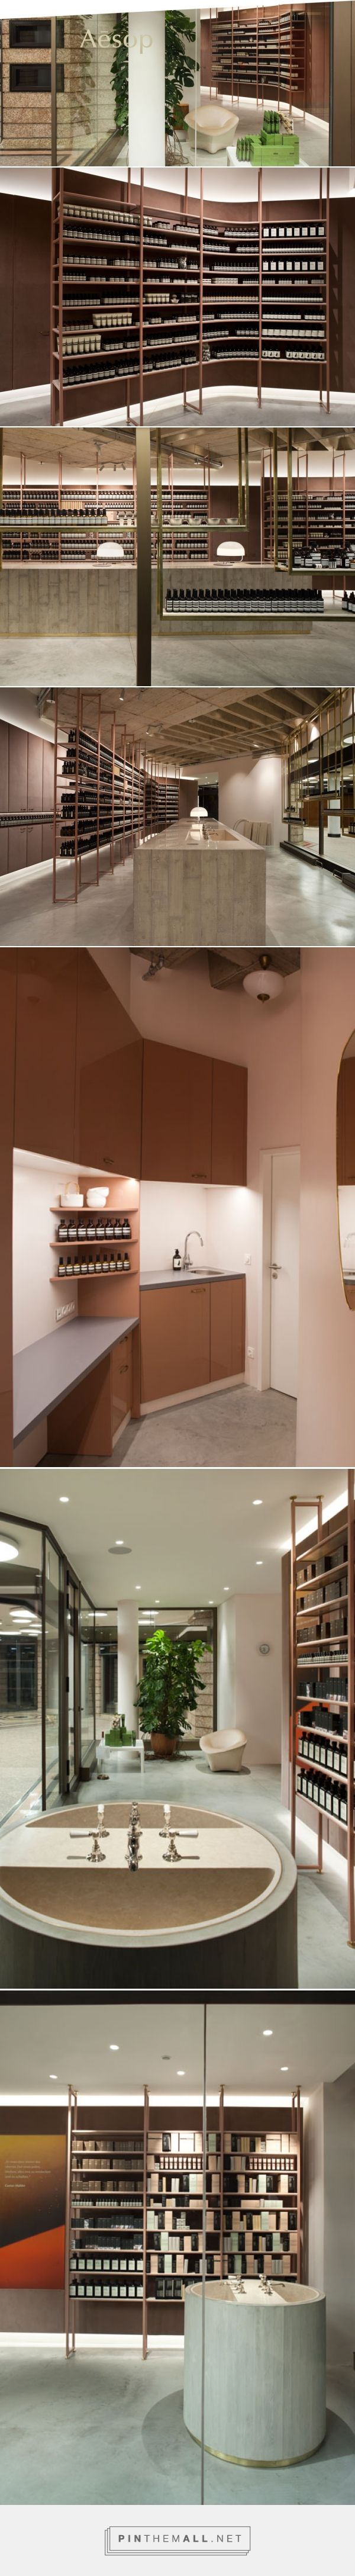 The Look & Like - Aesop Store Opening - Luitpoldblock München - created via http://pinthemall.net